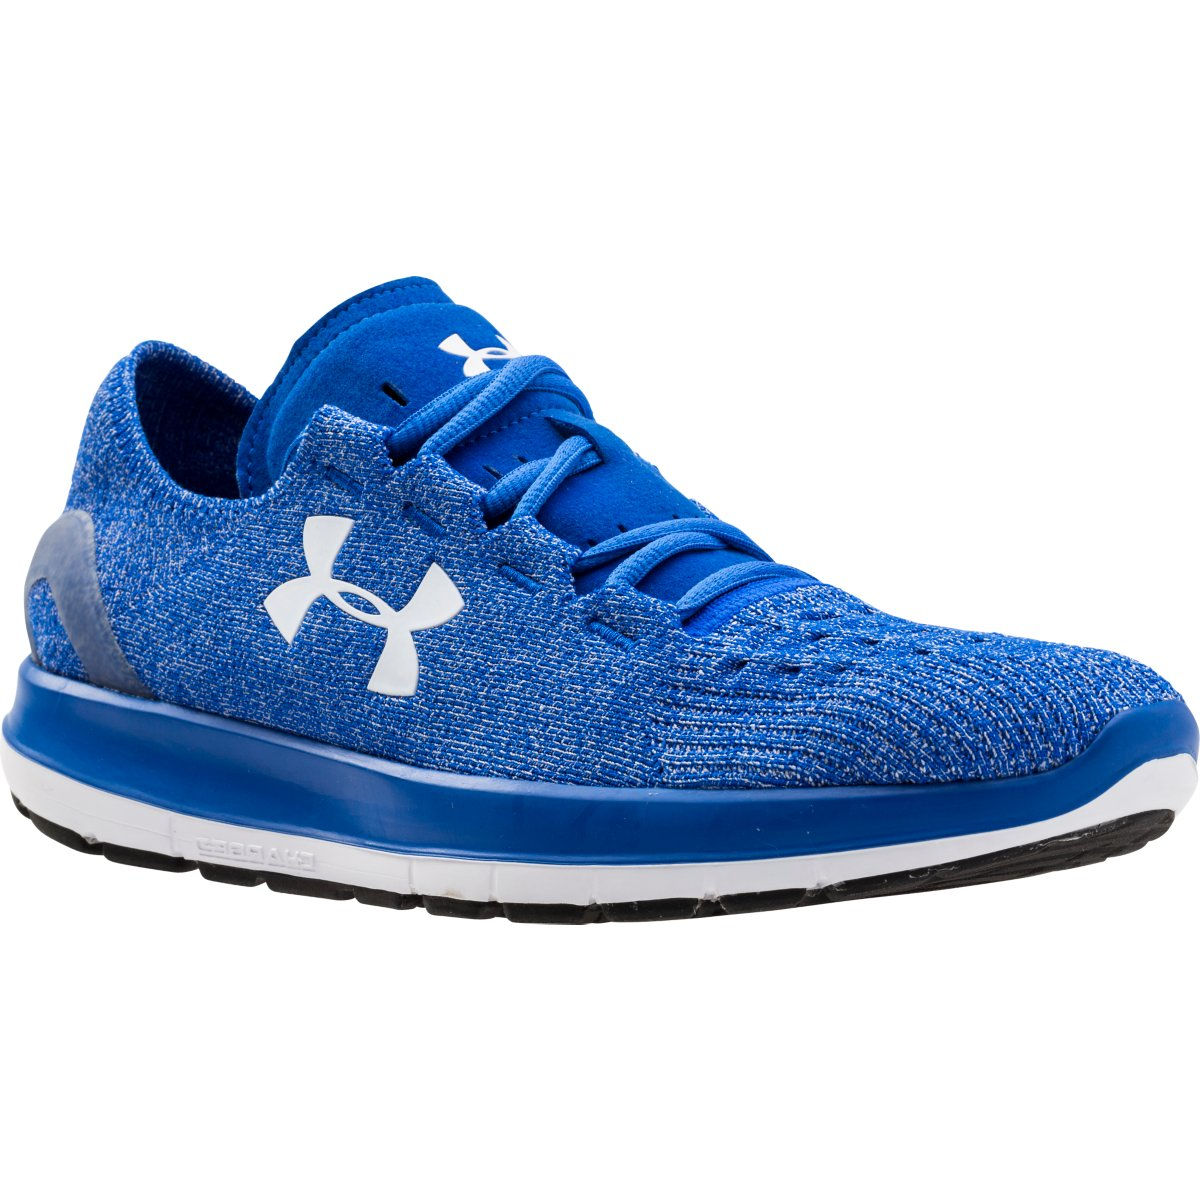 2b3f9a106b37 Cheap under armour shoes blue Buy Online  OFF46% Discounted